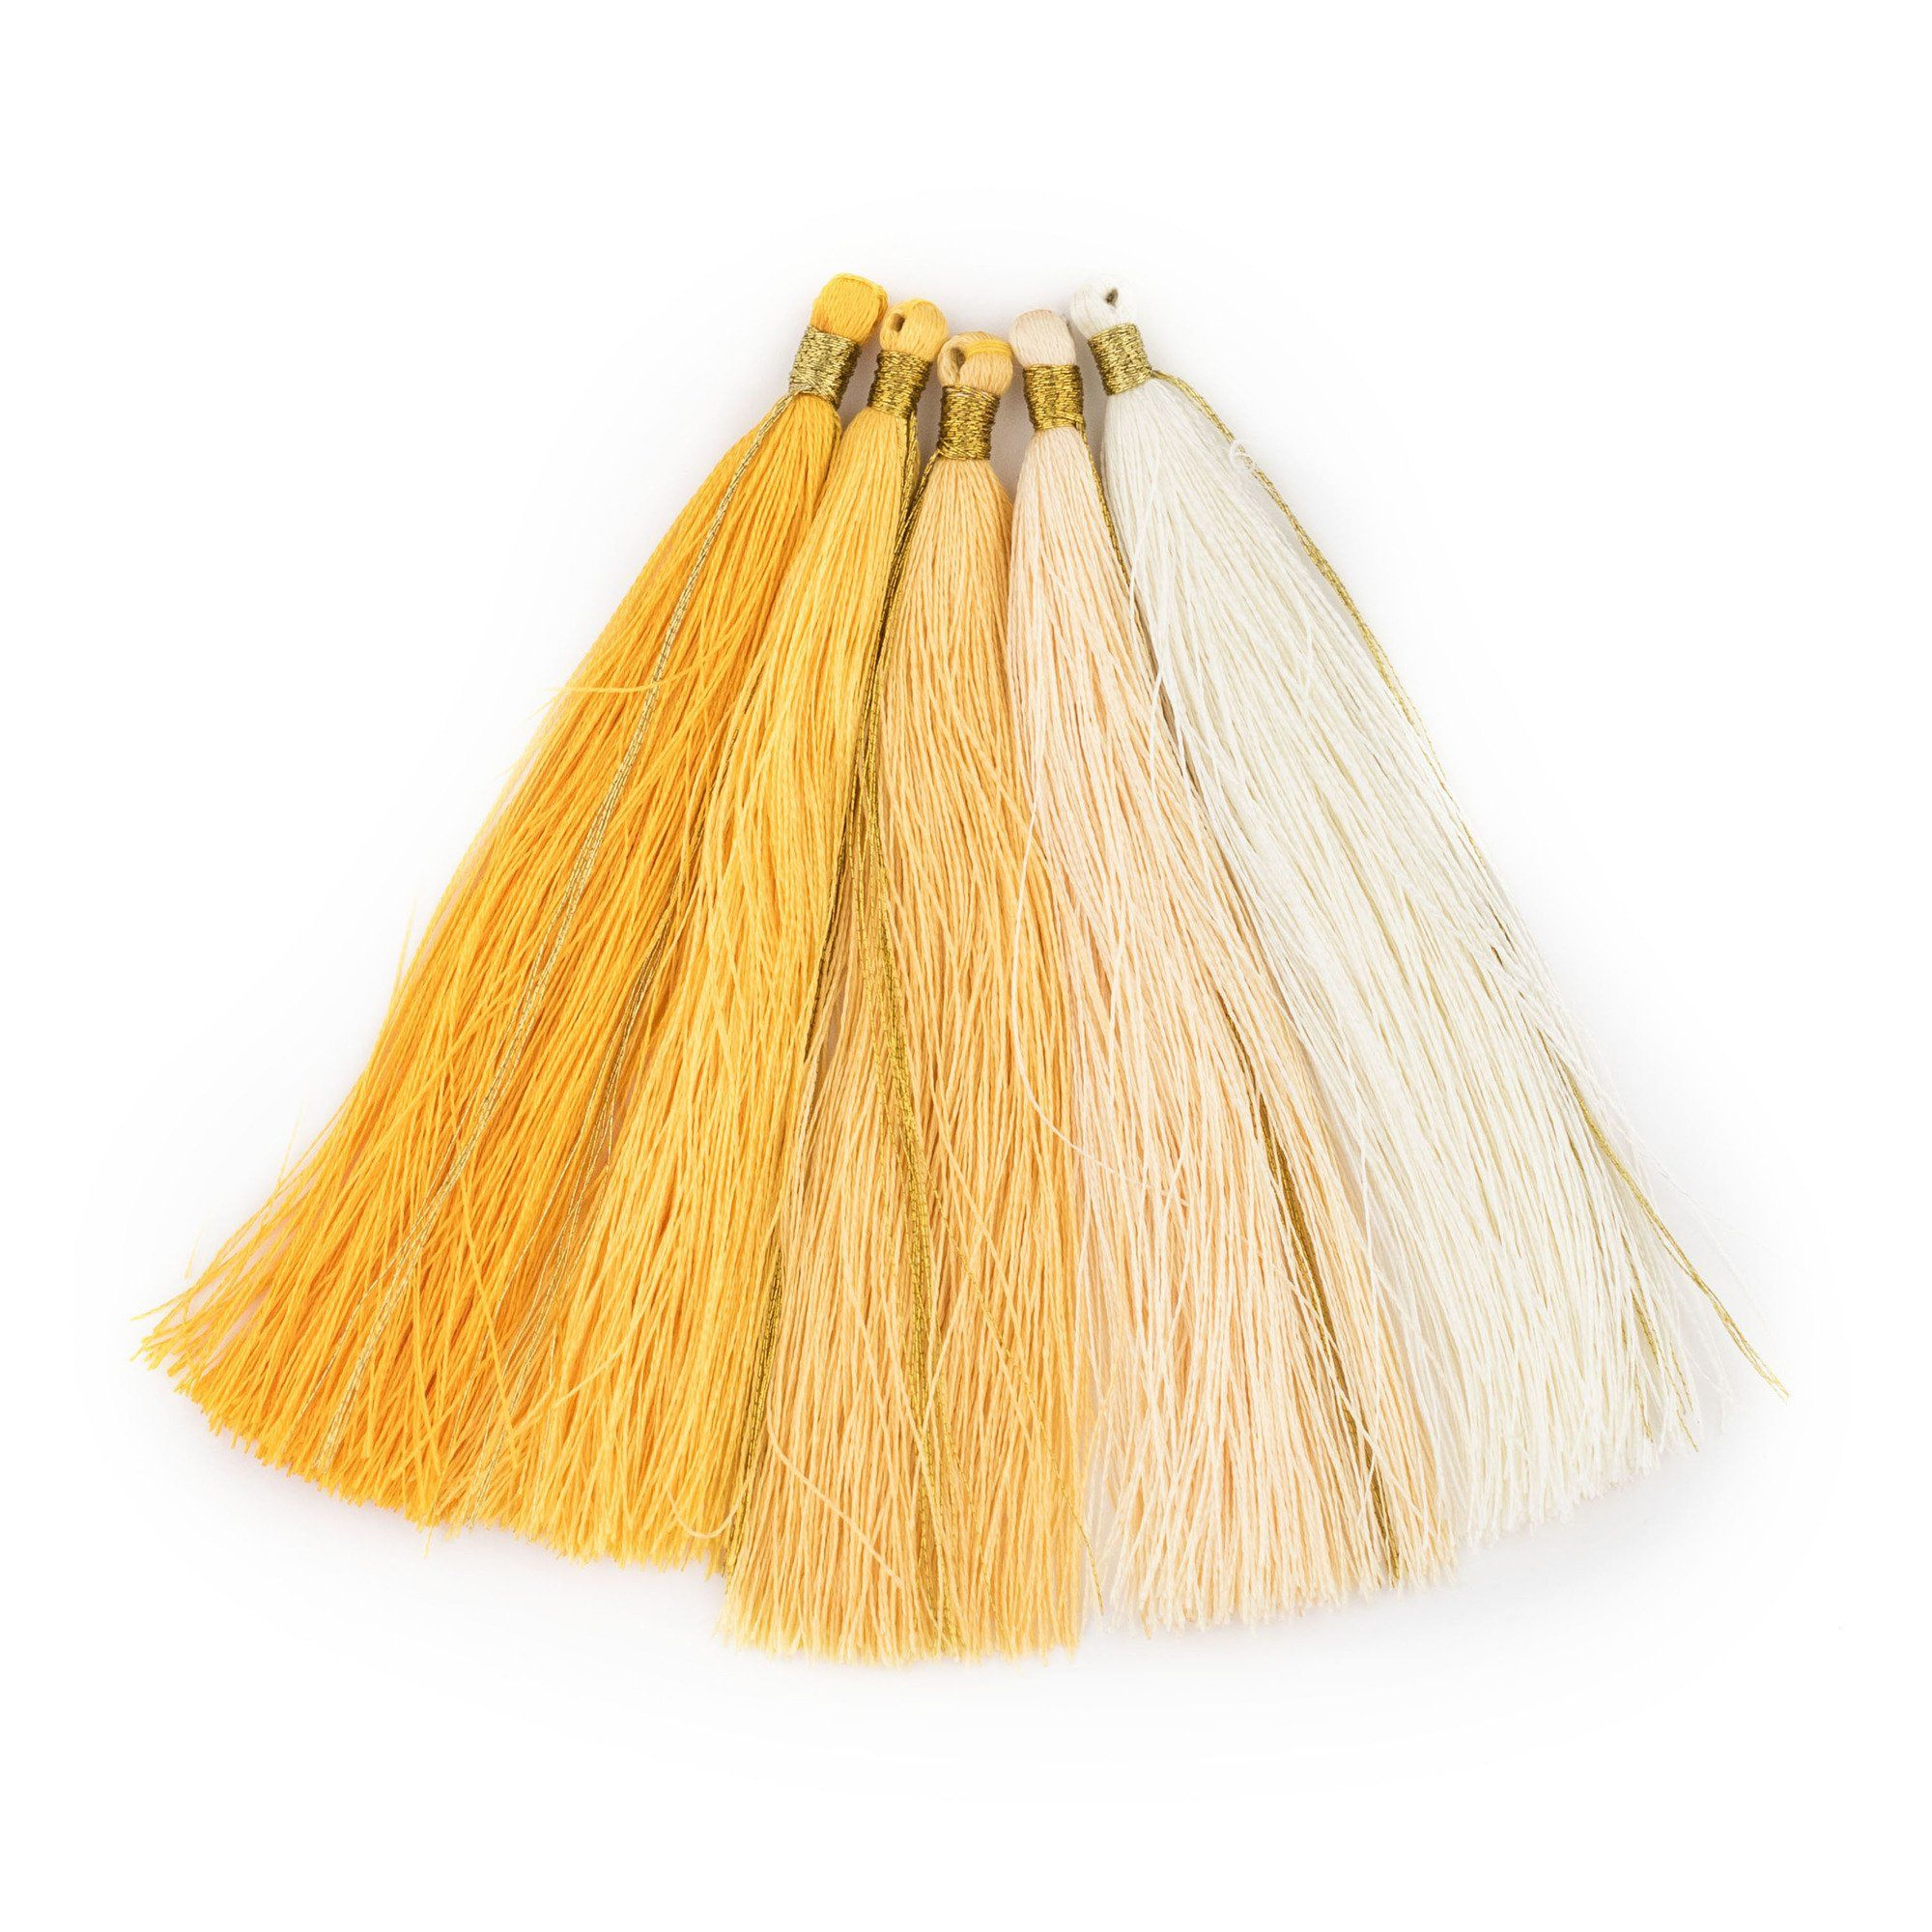 Shades Of Yellow 9cm Silk Tassels 5 Pack Shades Of Yellow